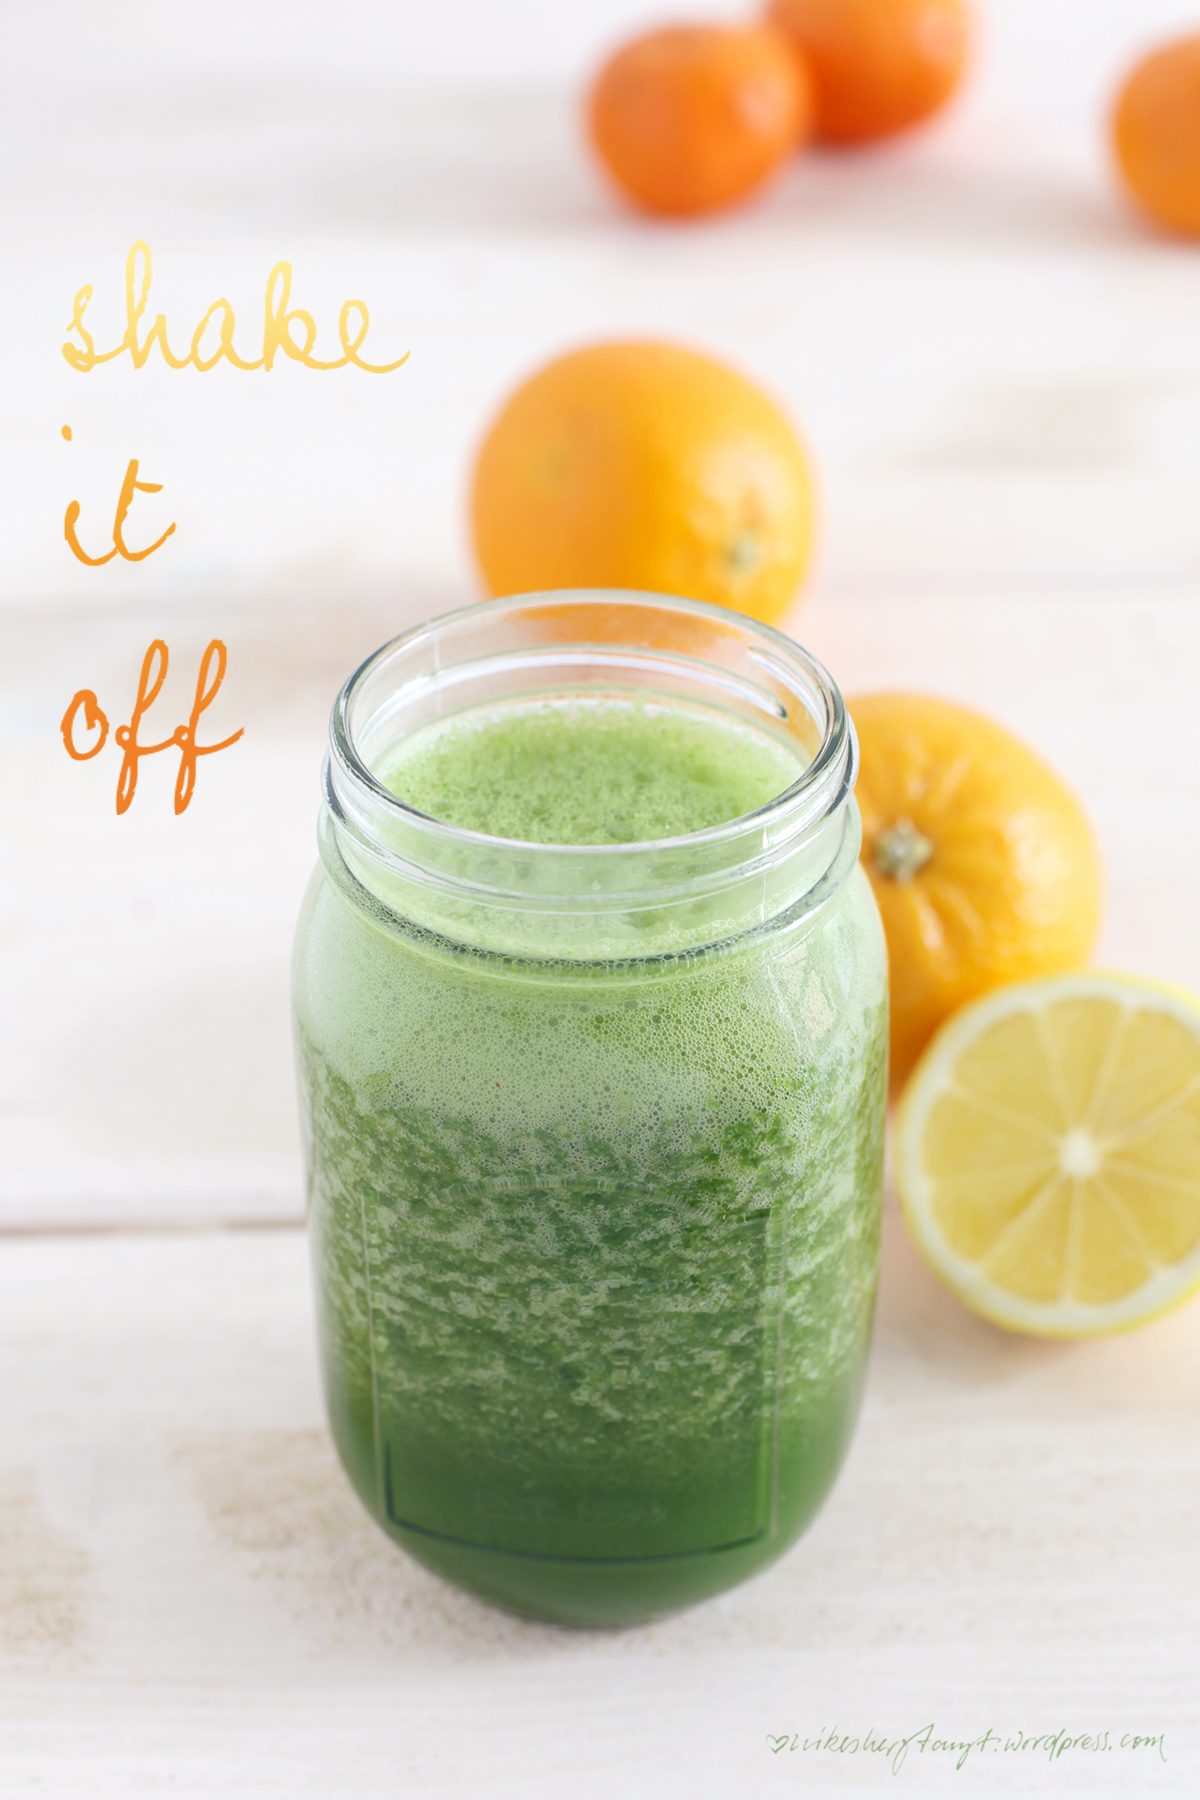 zuckerfrei ins neue jahr,green smoothie, grüner saft, detox, eat your greens, clean eating, vegan, orange, zitrone, minze, grünkohl, weizengraspulver, nikesherztanzt